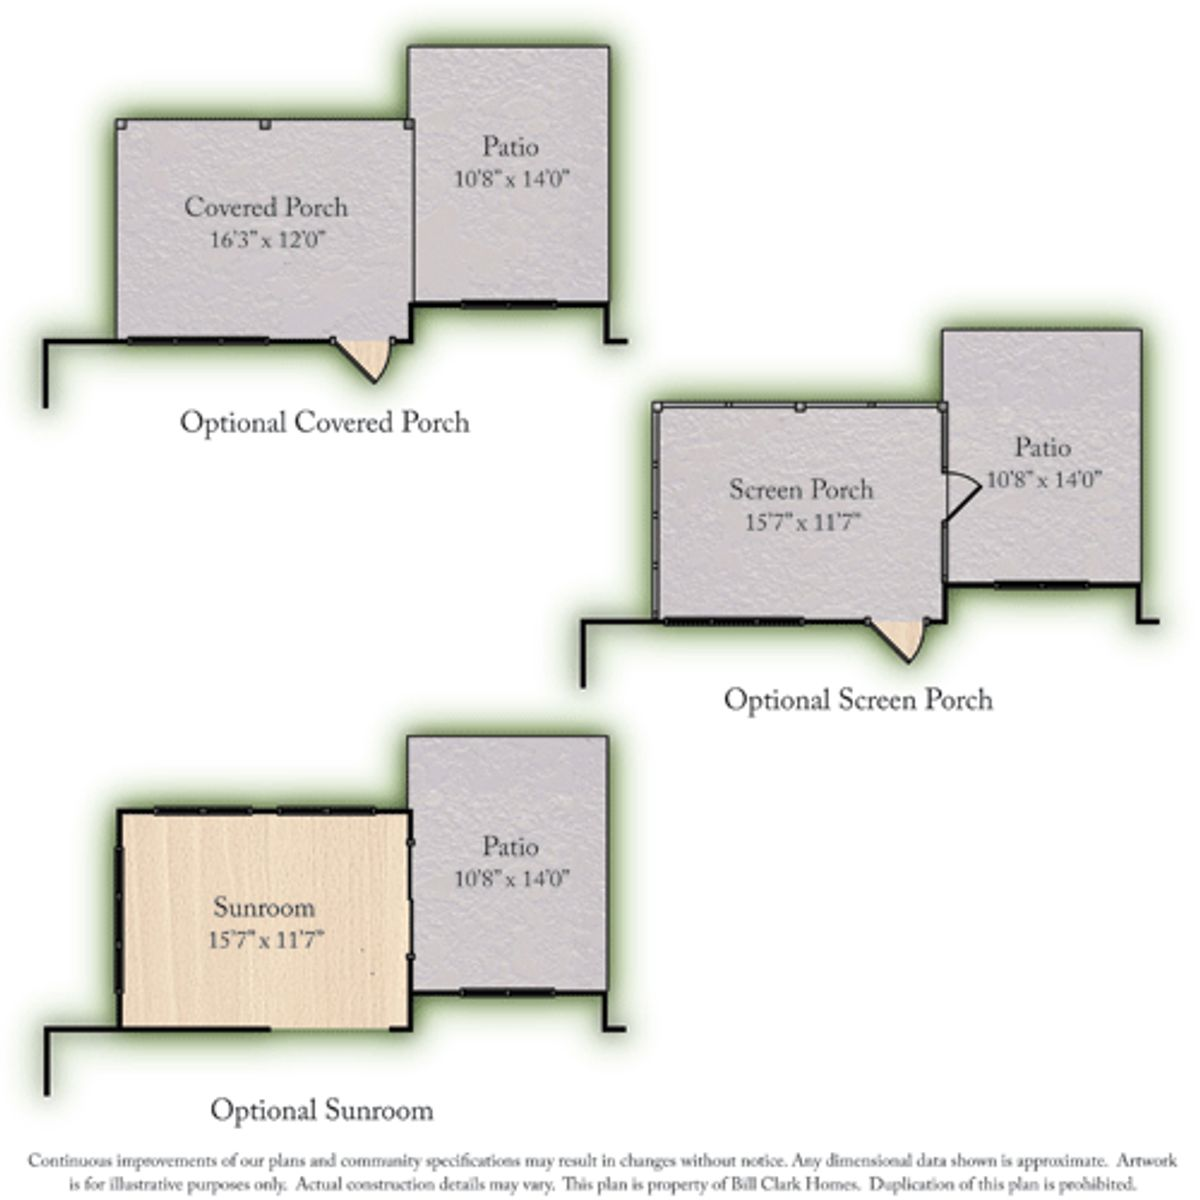 The Jackson Springs at Arbor Hills South II Options